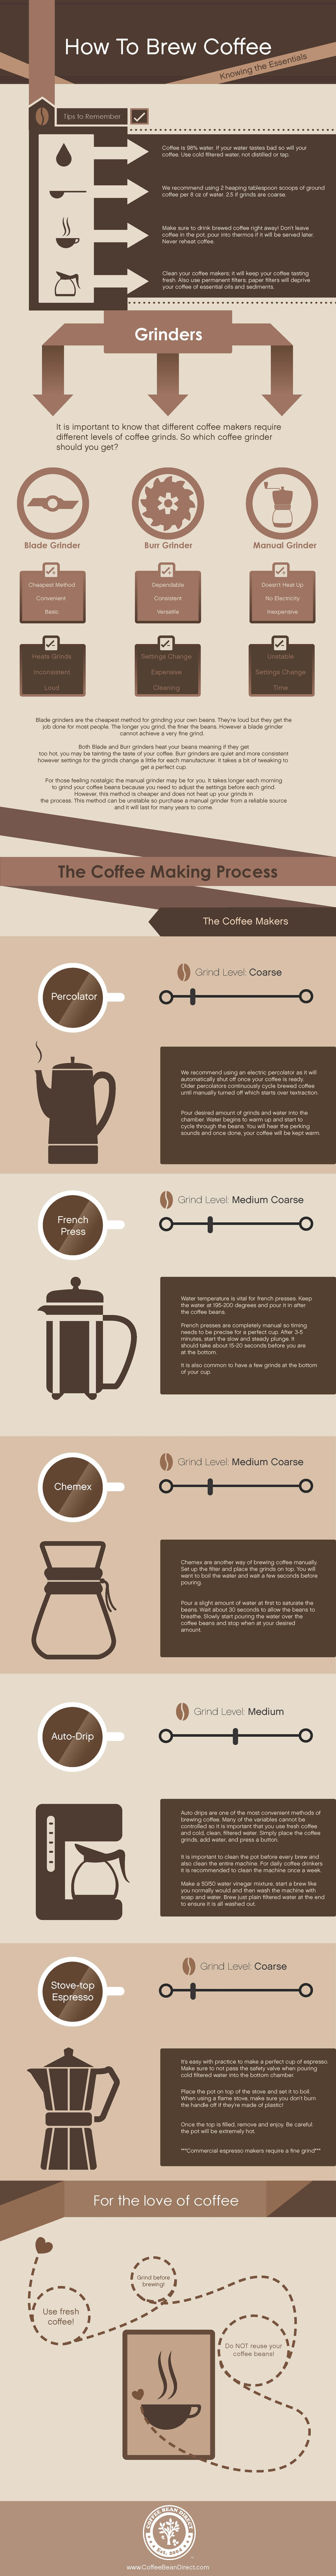 How to brew coffee infographic Drip Grind Coffee For French Press How To Use French Press Coffee Maker Recipe Amp Video